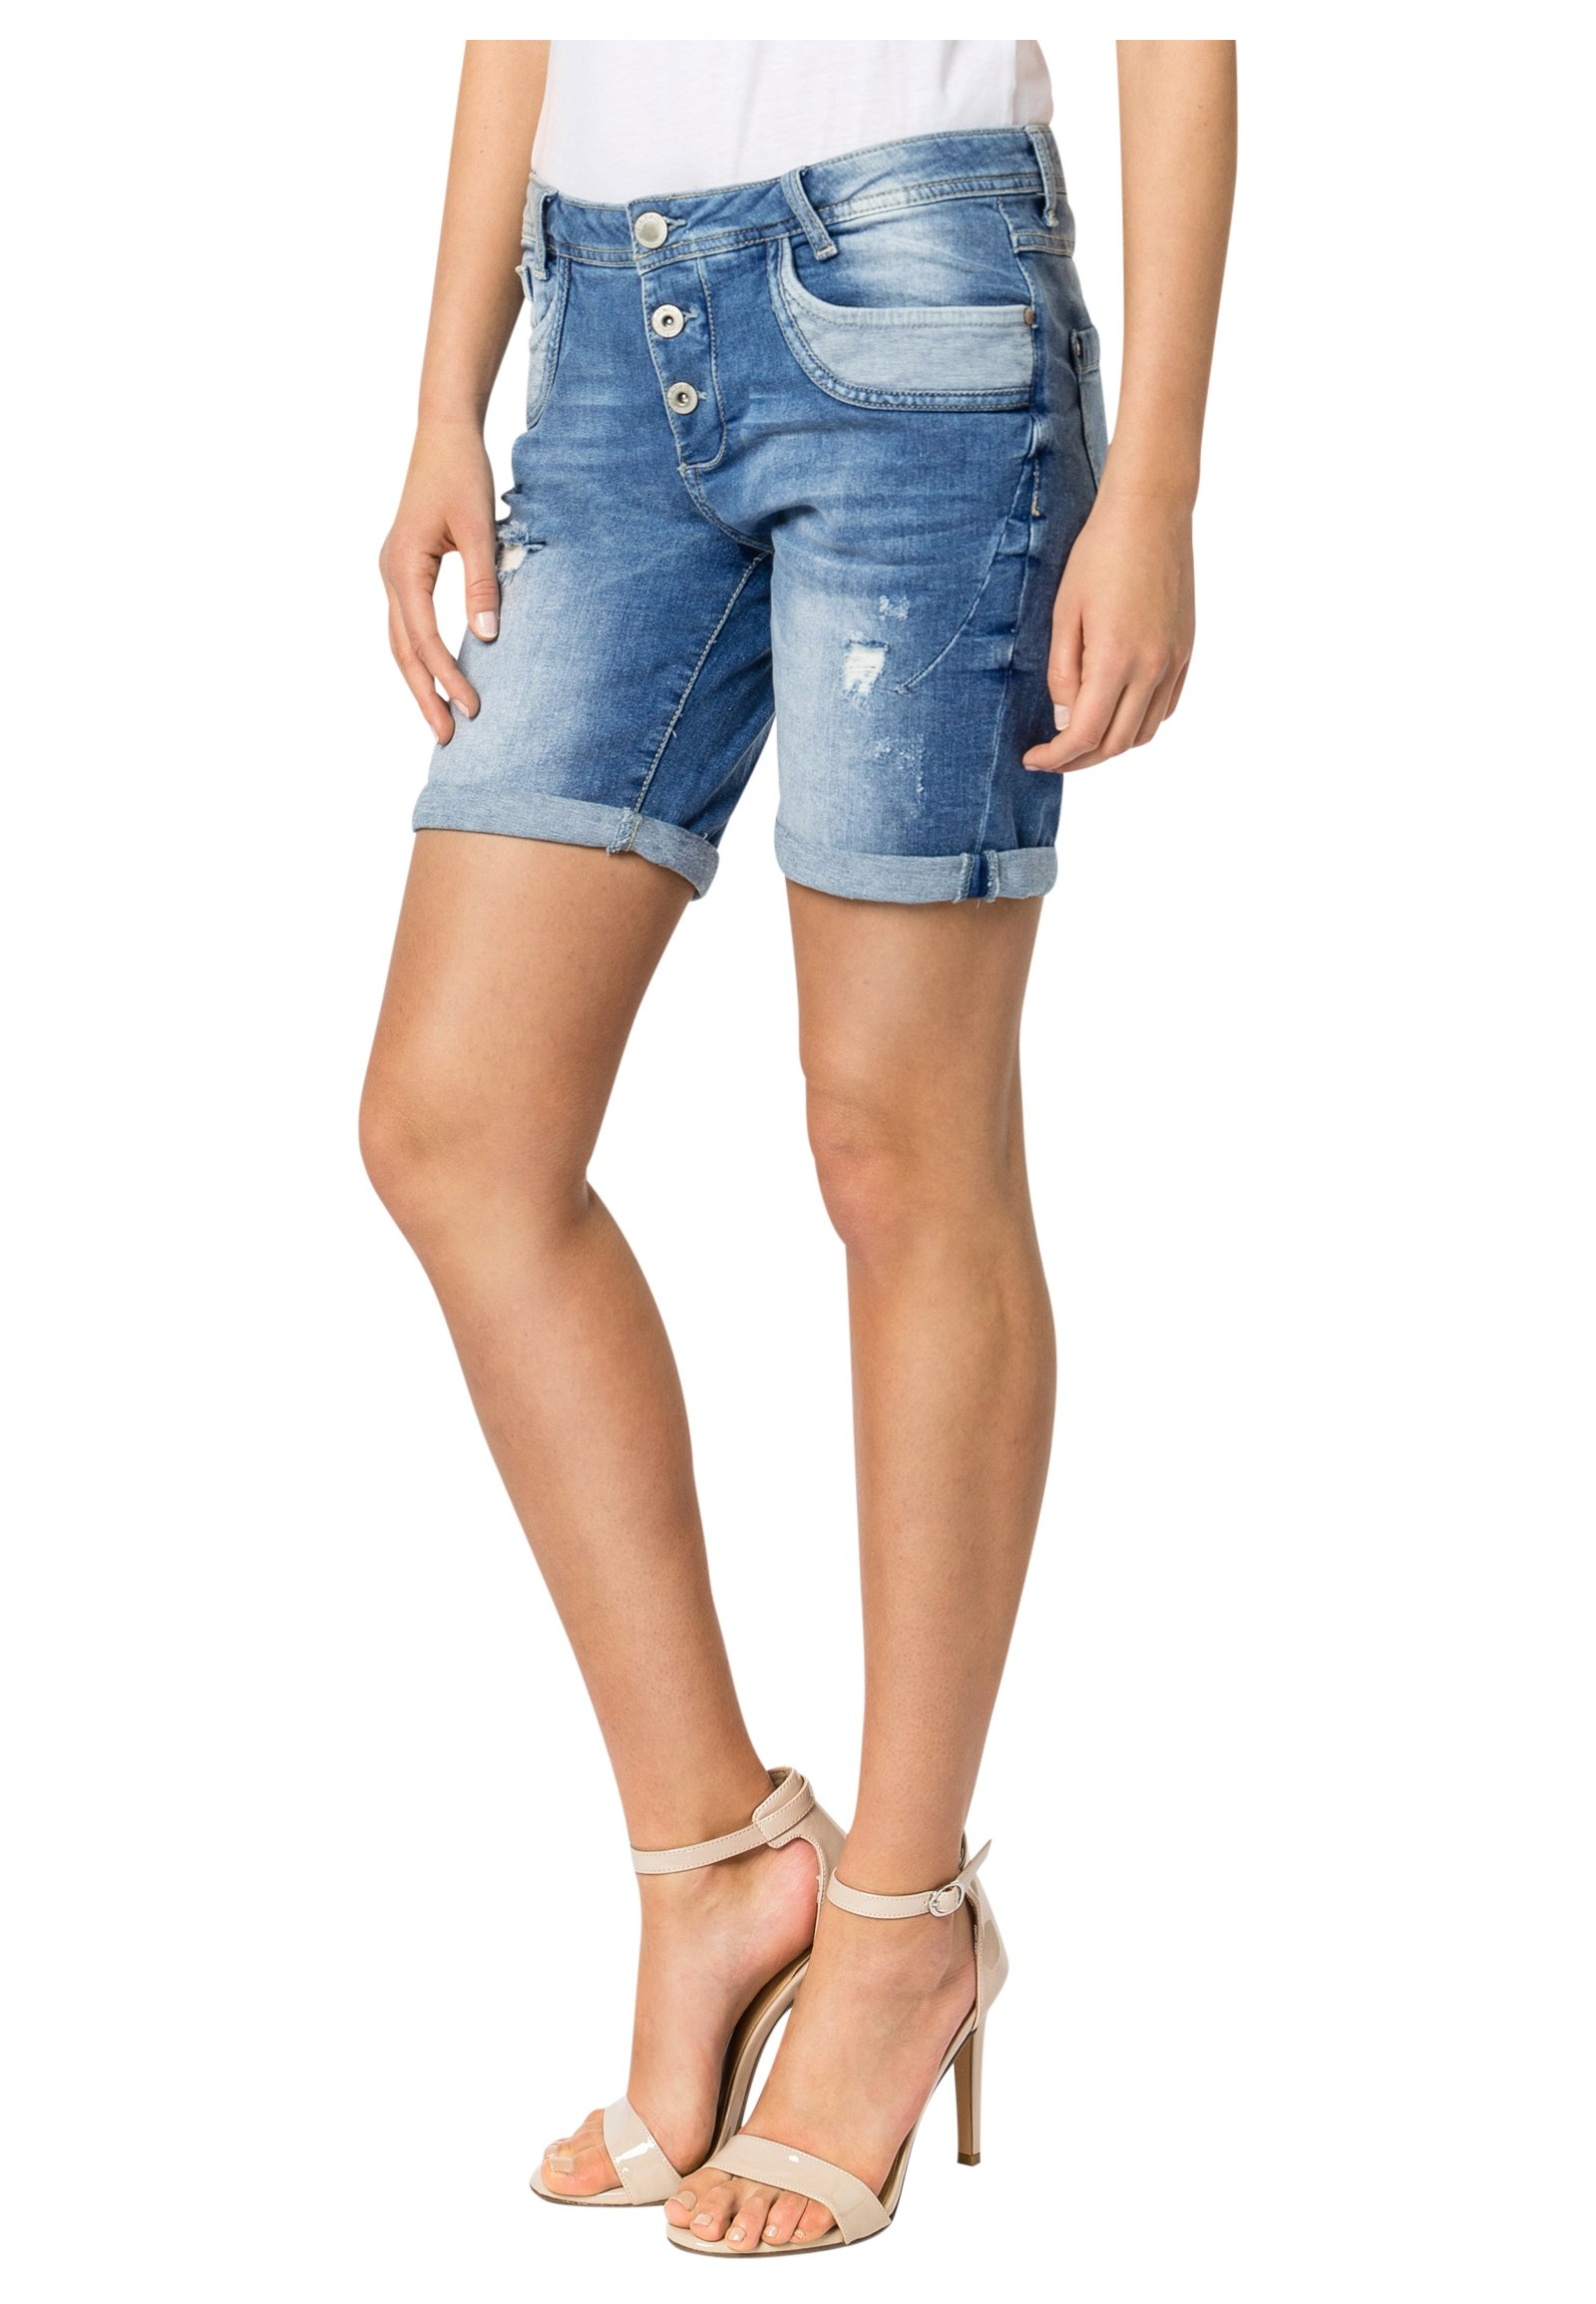 Sublevel Damen Shorts   Blaue Jeans Bermuda mit Destroyed Parts im  Boyfriend-Style Blue XS 777103e708